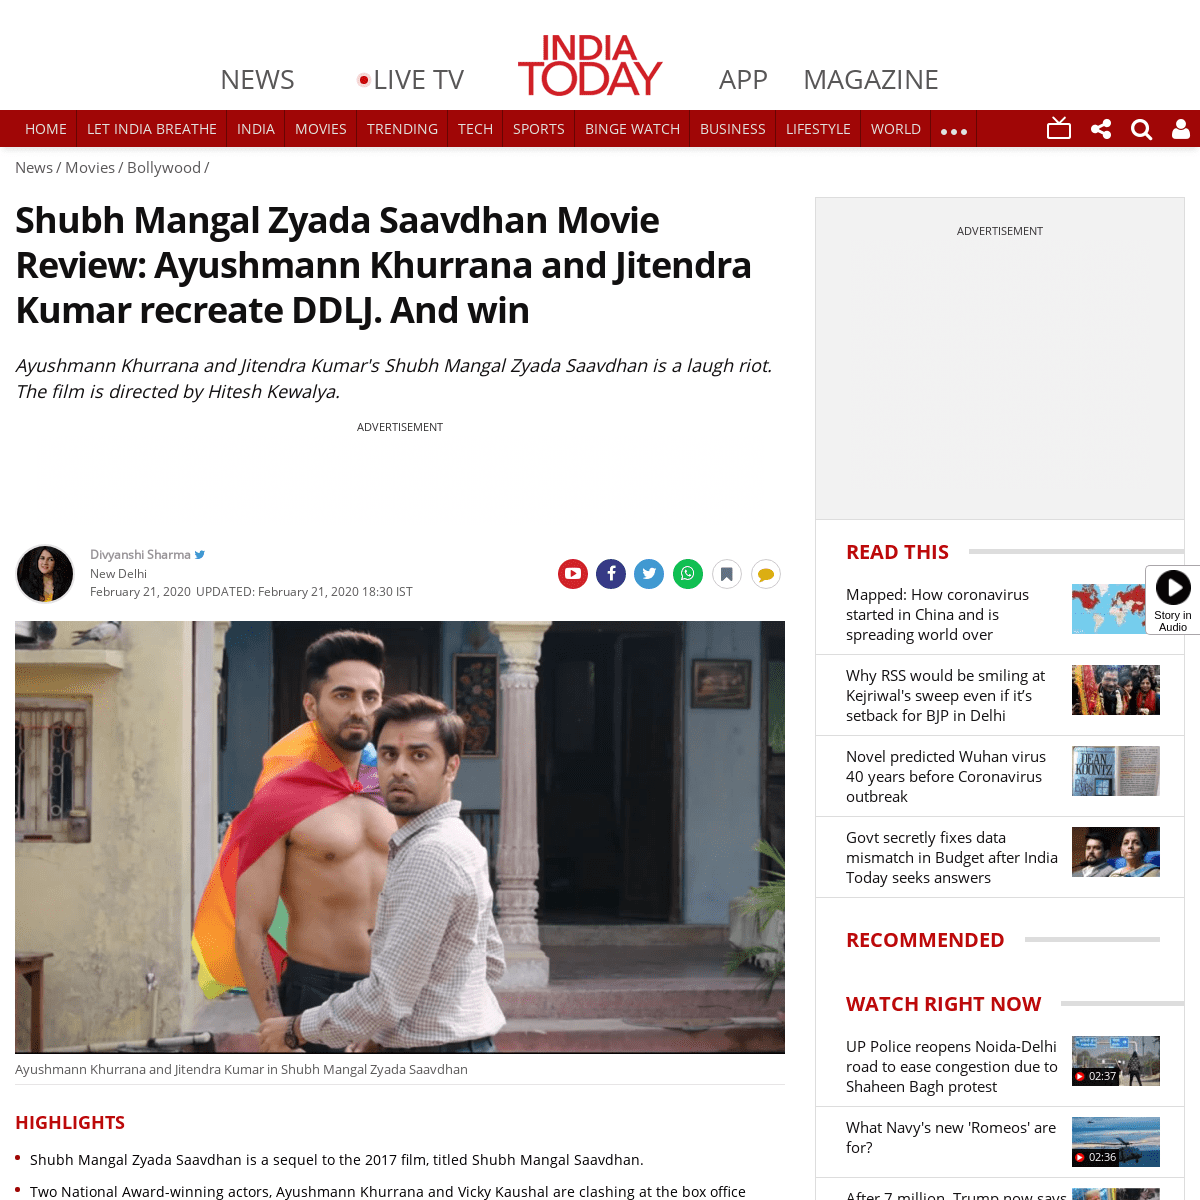 ArchiveBay.com - www.indiatoday.in/movies/bollywood/story/shubh-mangal-zyada-saavdhan-movie-review-ayushmann-khurrana-and-jitendra-kumar-recreate-ddlj-and-win-1648705-2020-02-21 - Shubh Mangal Zyada Saavdhan Movie Review- Ayushmann Khurrana and Jitendra Kumar recreate DDLJ. And win - Movies News